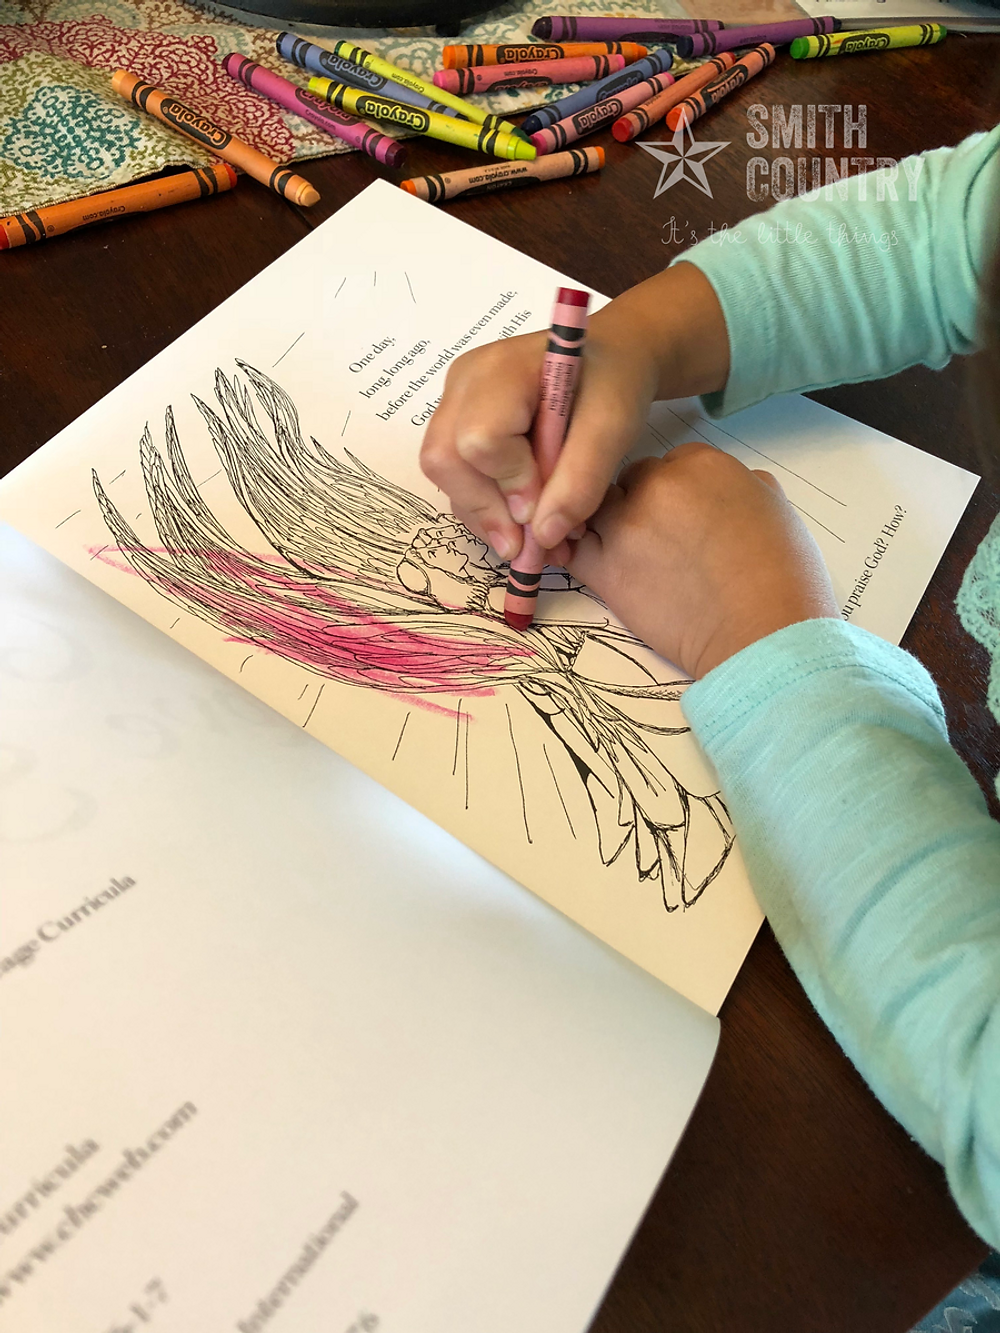 an image of crayons and little hands coloring an image of an Angel.